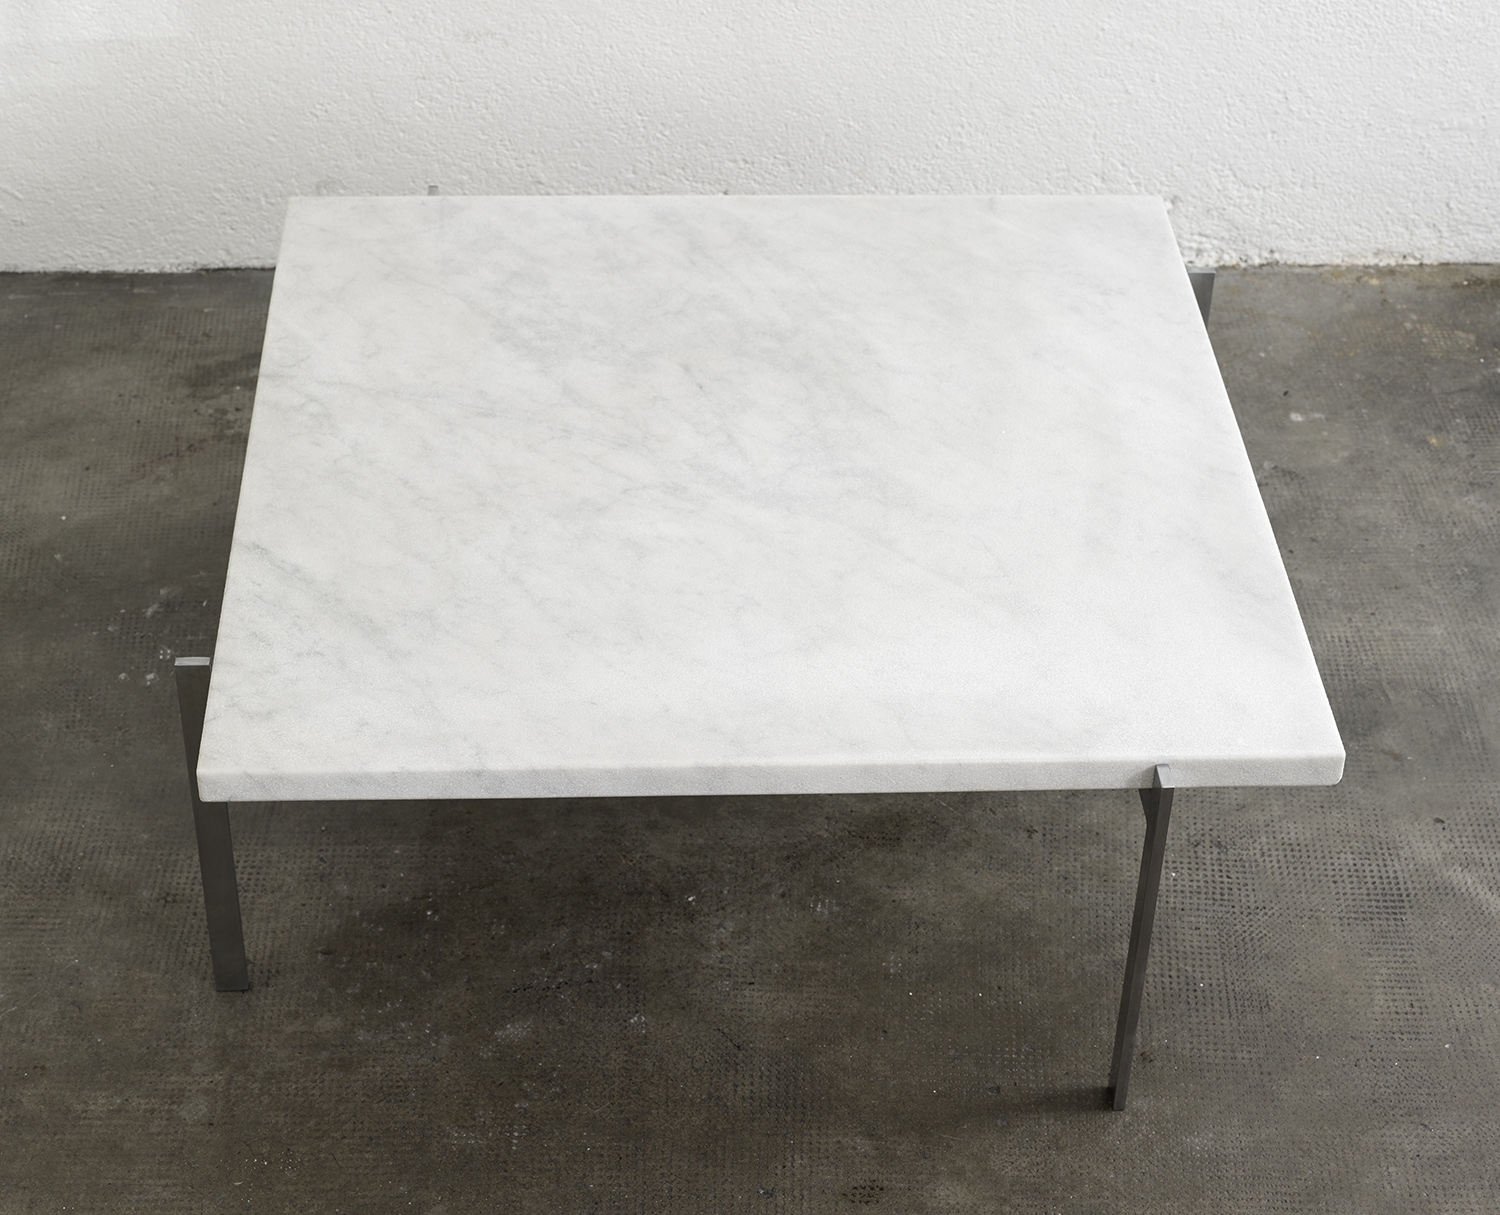 pk61-coffee-table-by-poul-kjaerholm-image-01